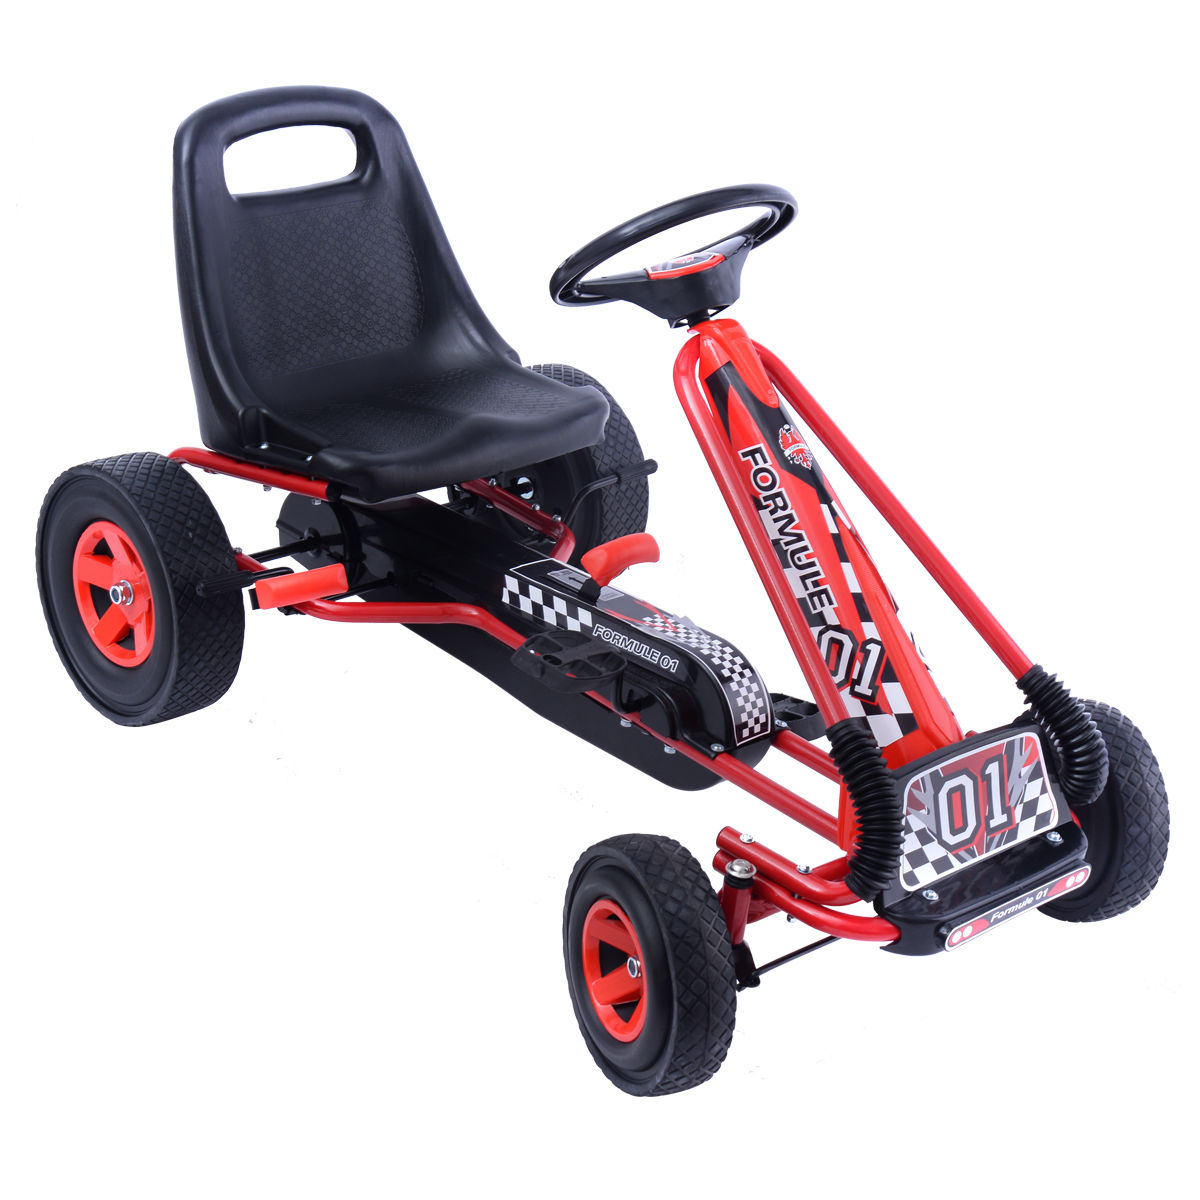 Costway 4 Wheels Kids Ride On Pedal Powered Bike Go Kart Racer Car Outdoor Play Toy by Costway